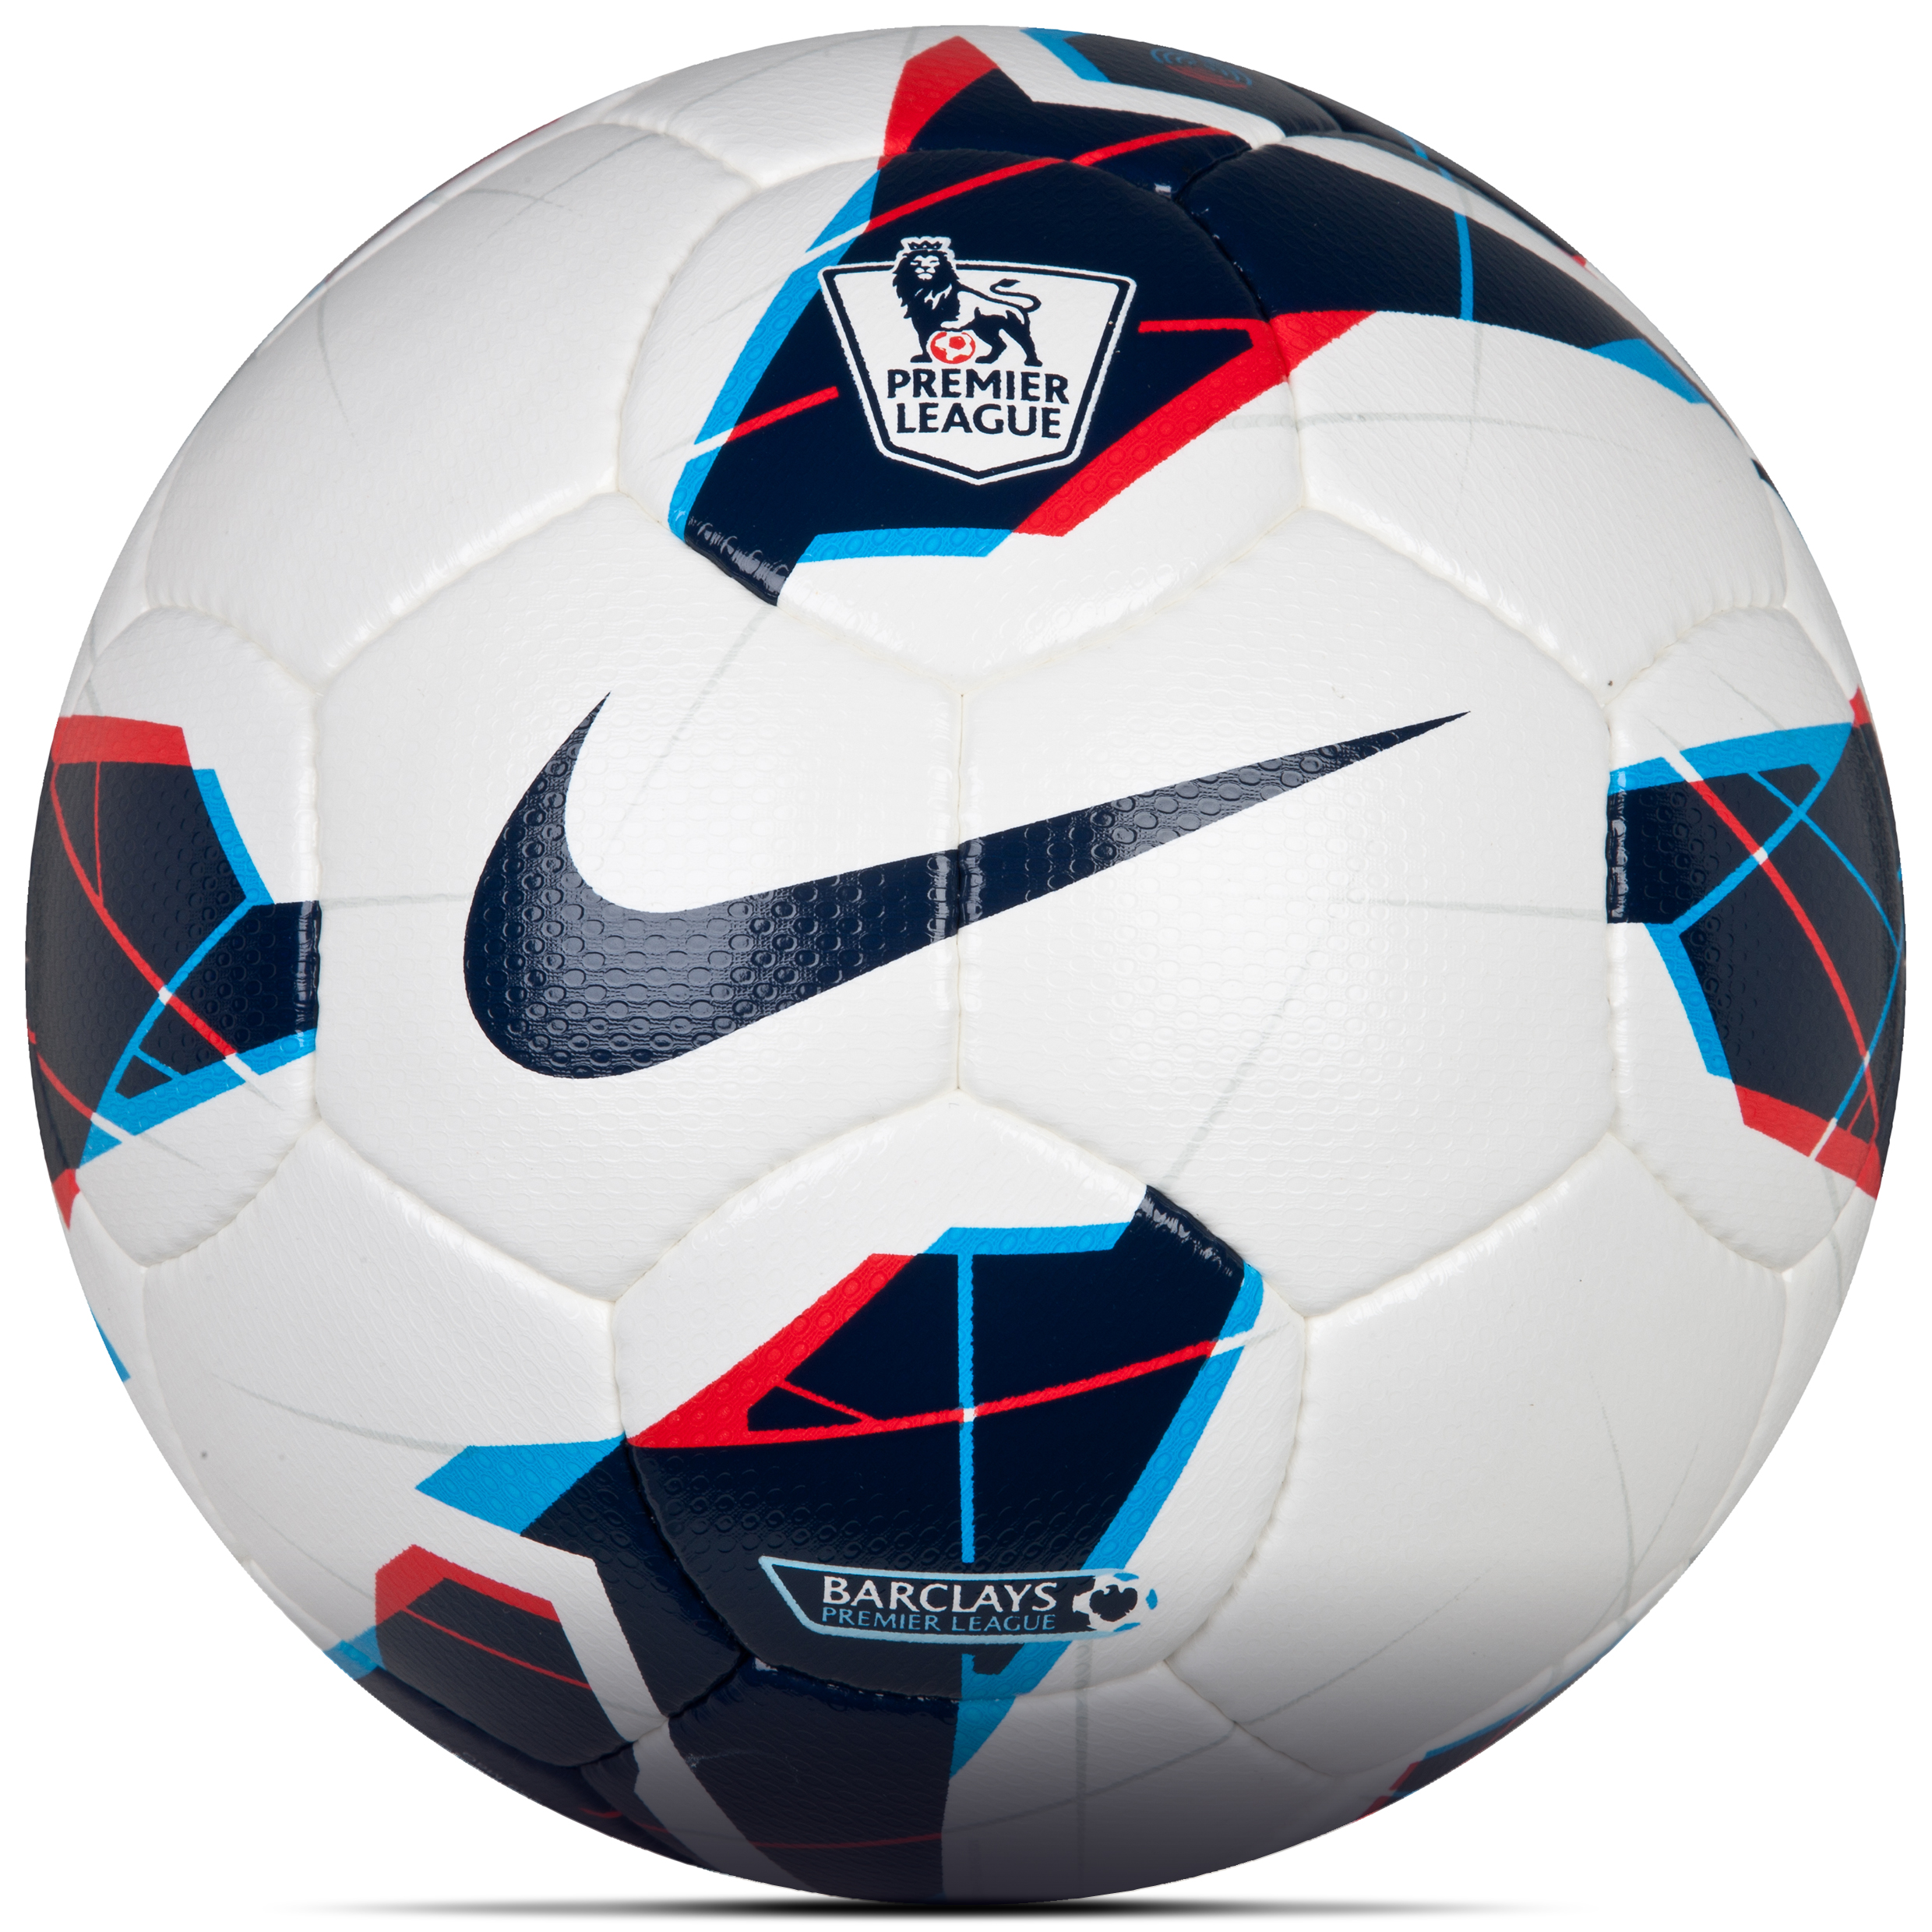 Nike Maxim Premier League Official Matchball - White/Blue/Blue